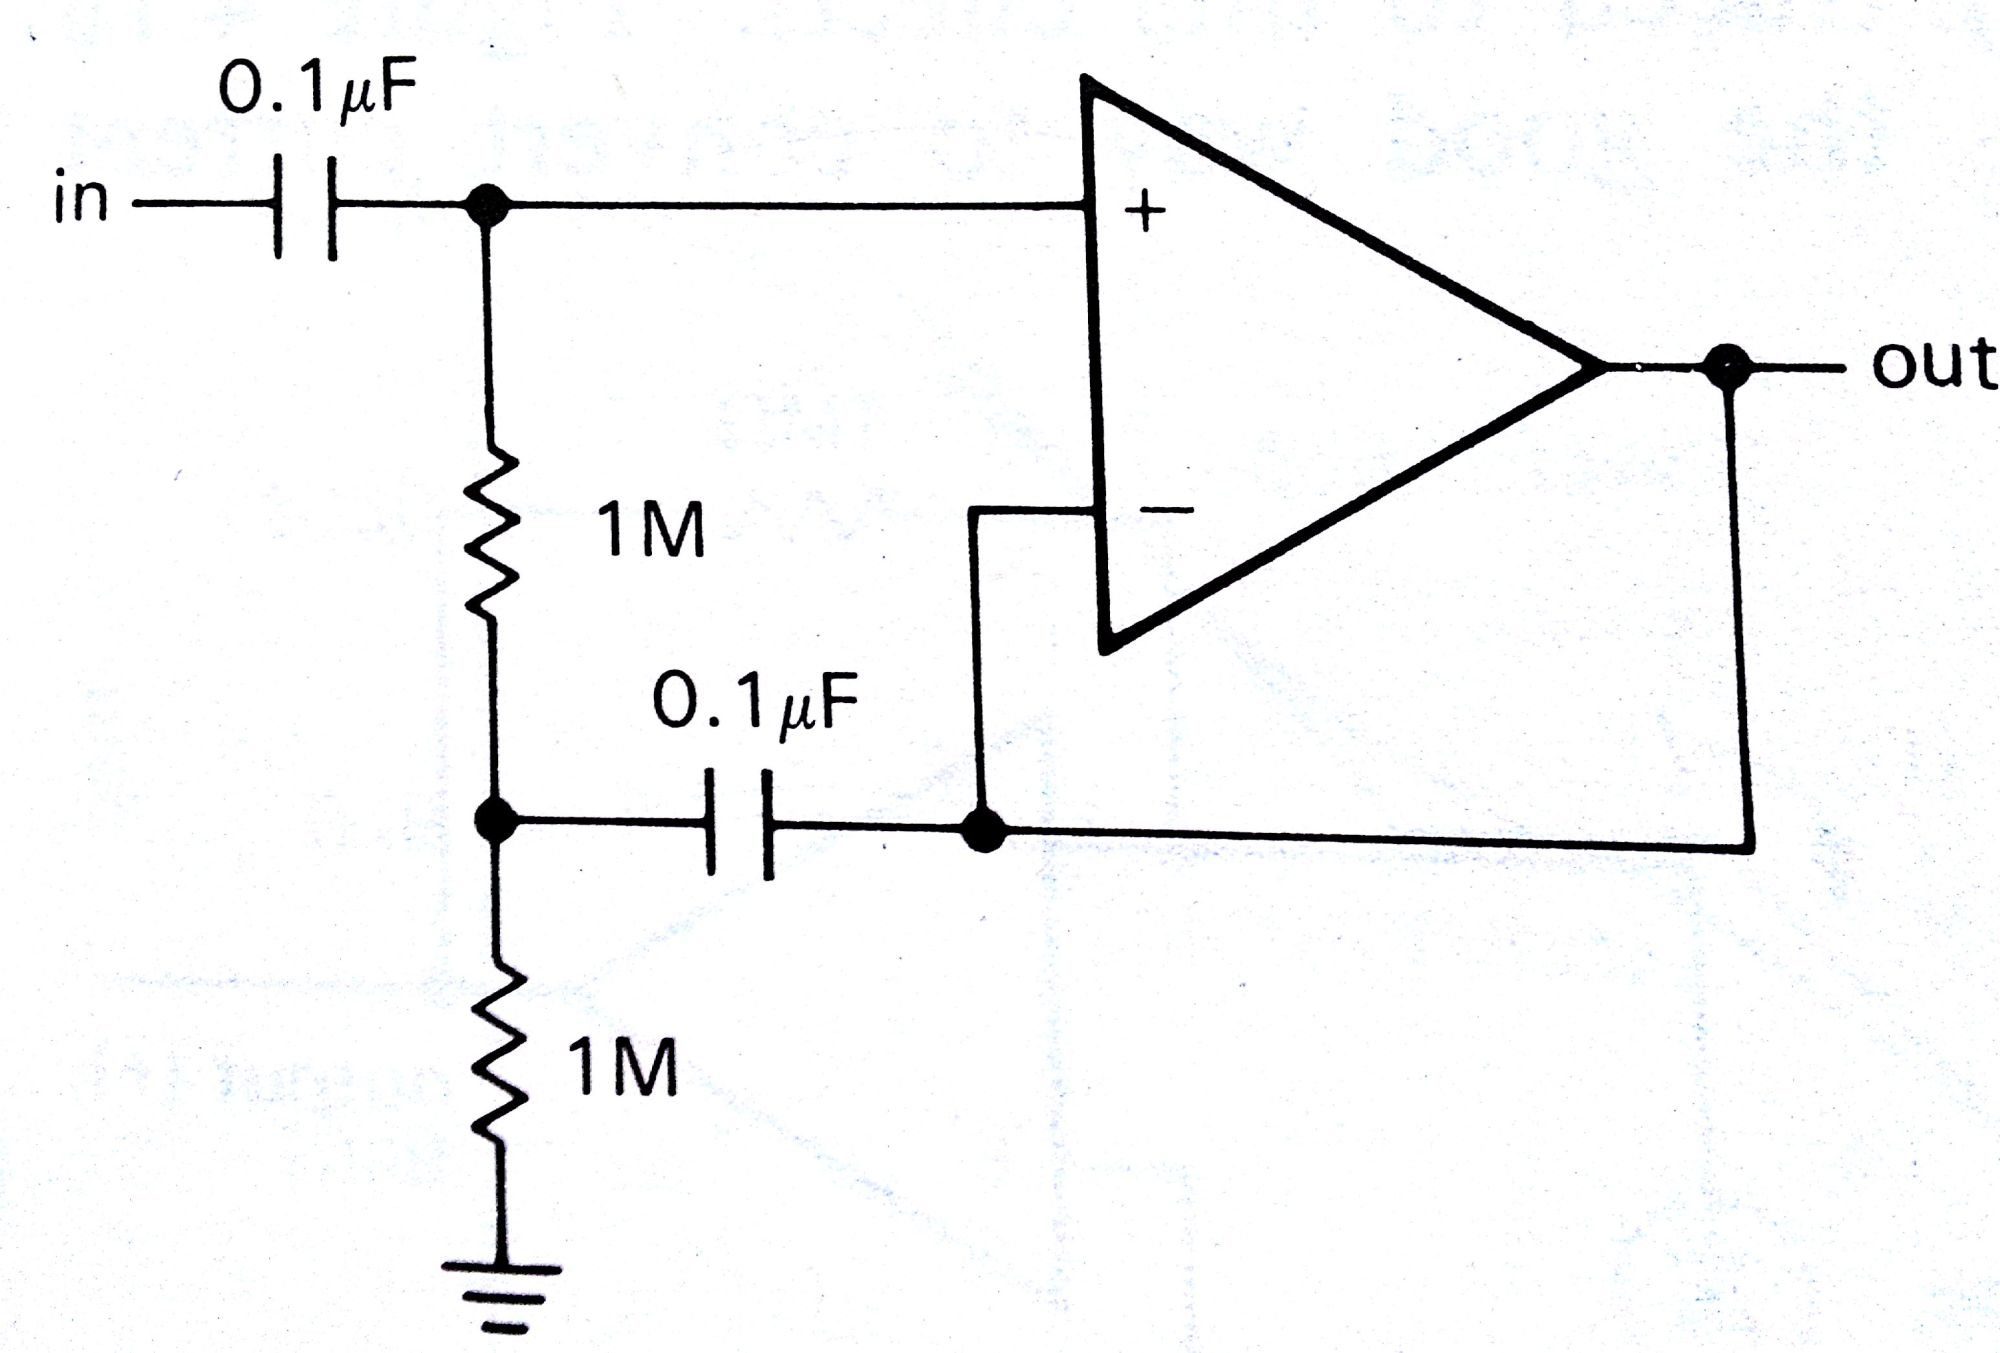 hight resolution of op amp bootstrapping jpg341 90 kb